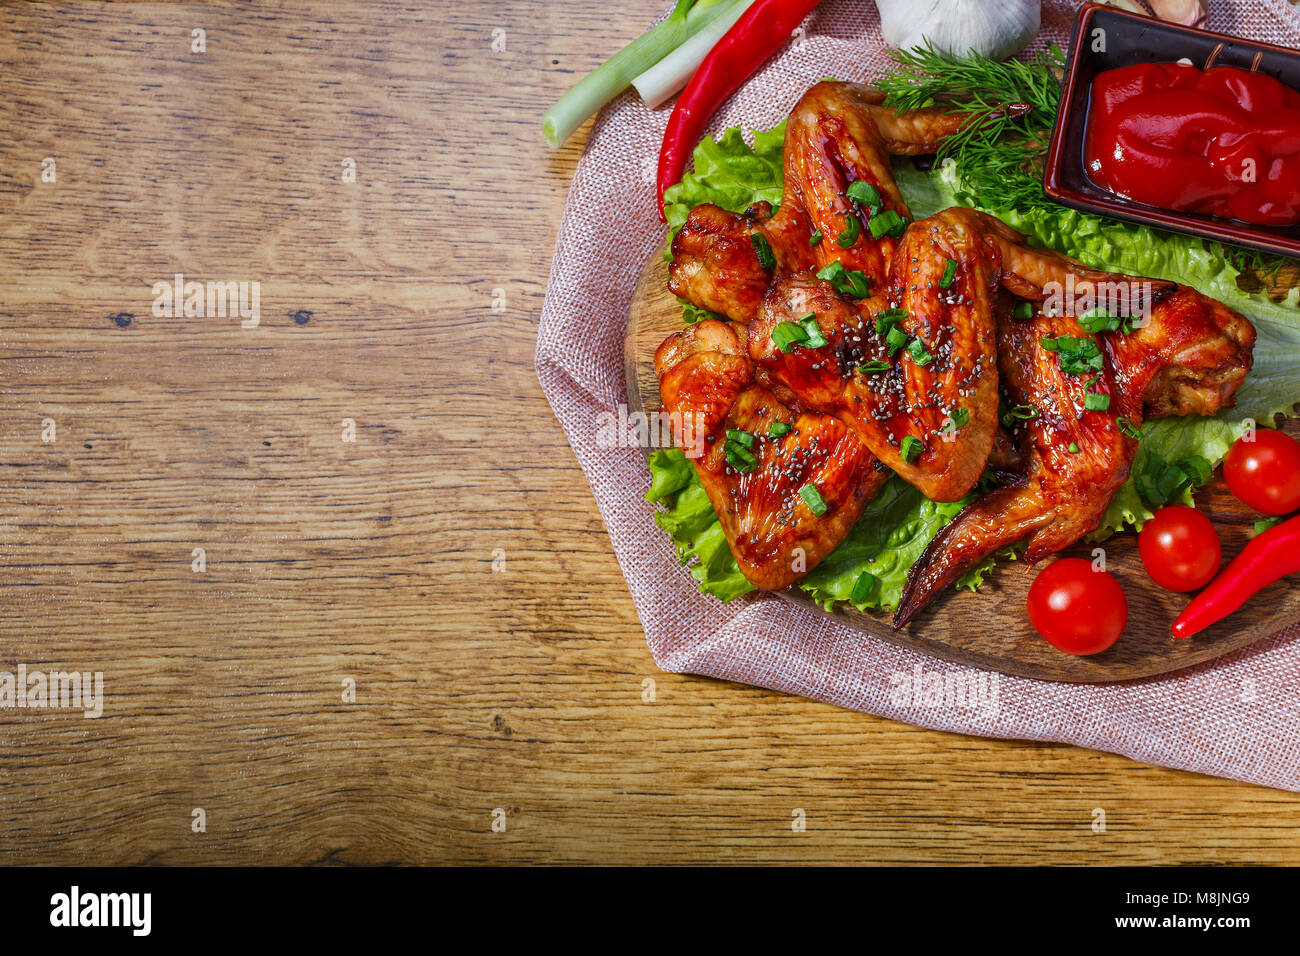 Fried chicken wings and fresh vegetables on wooden table, with space for text - Stock Image